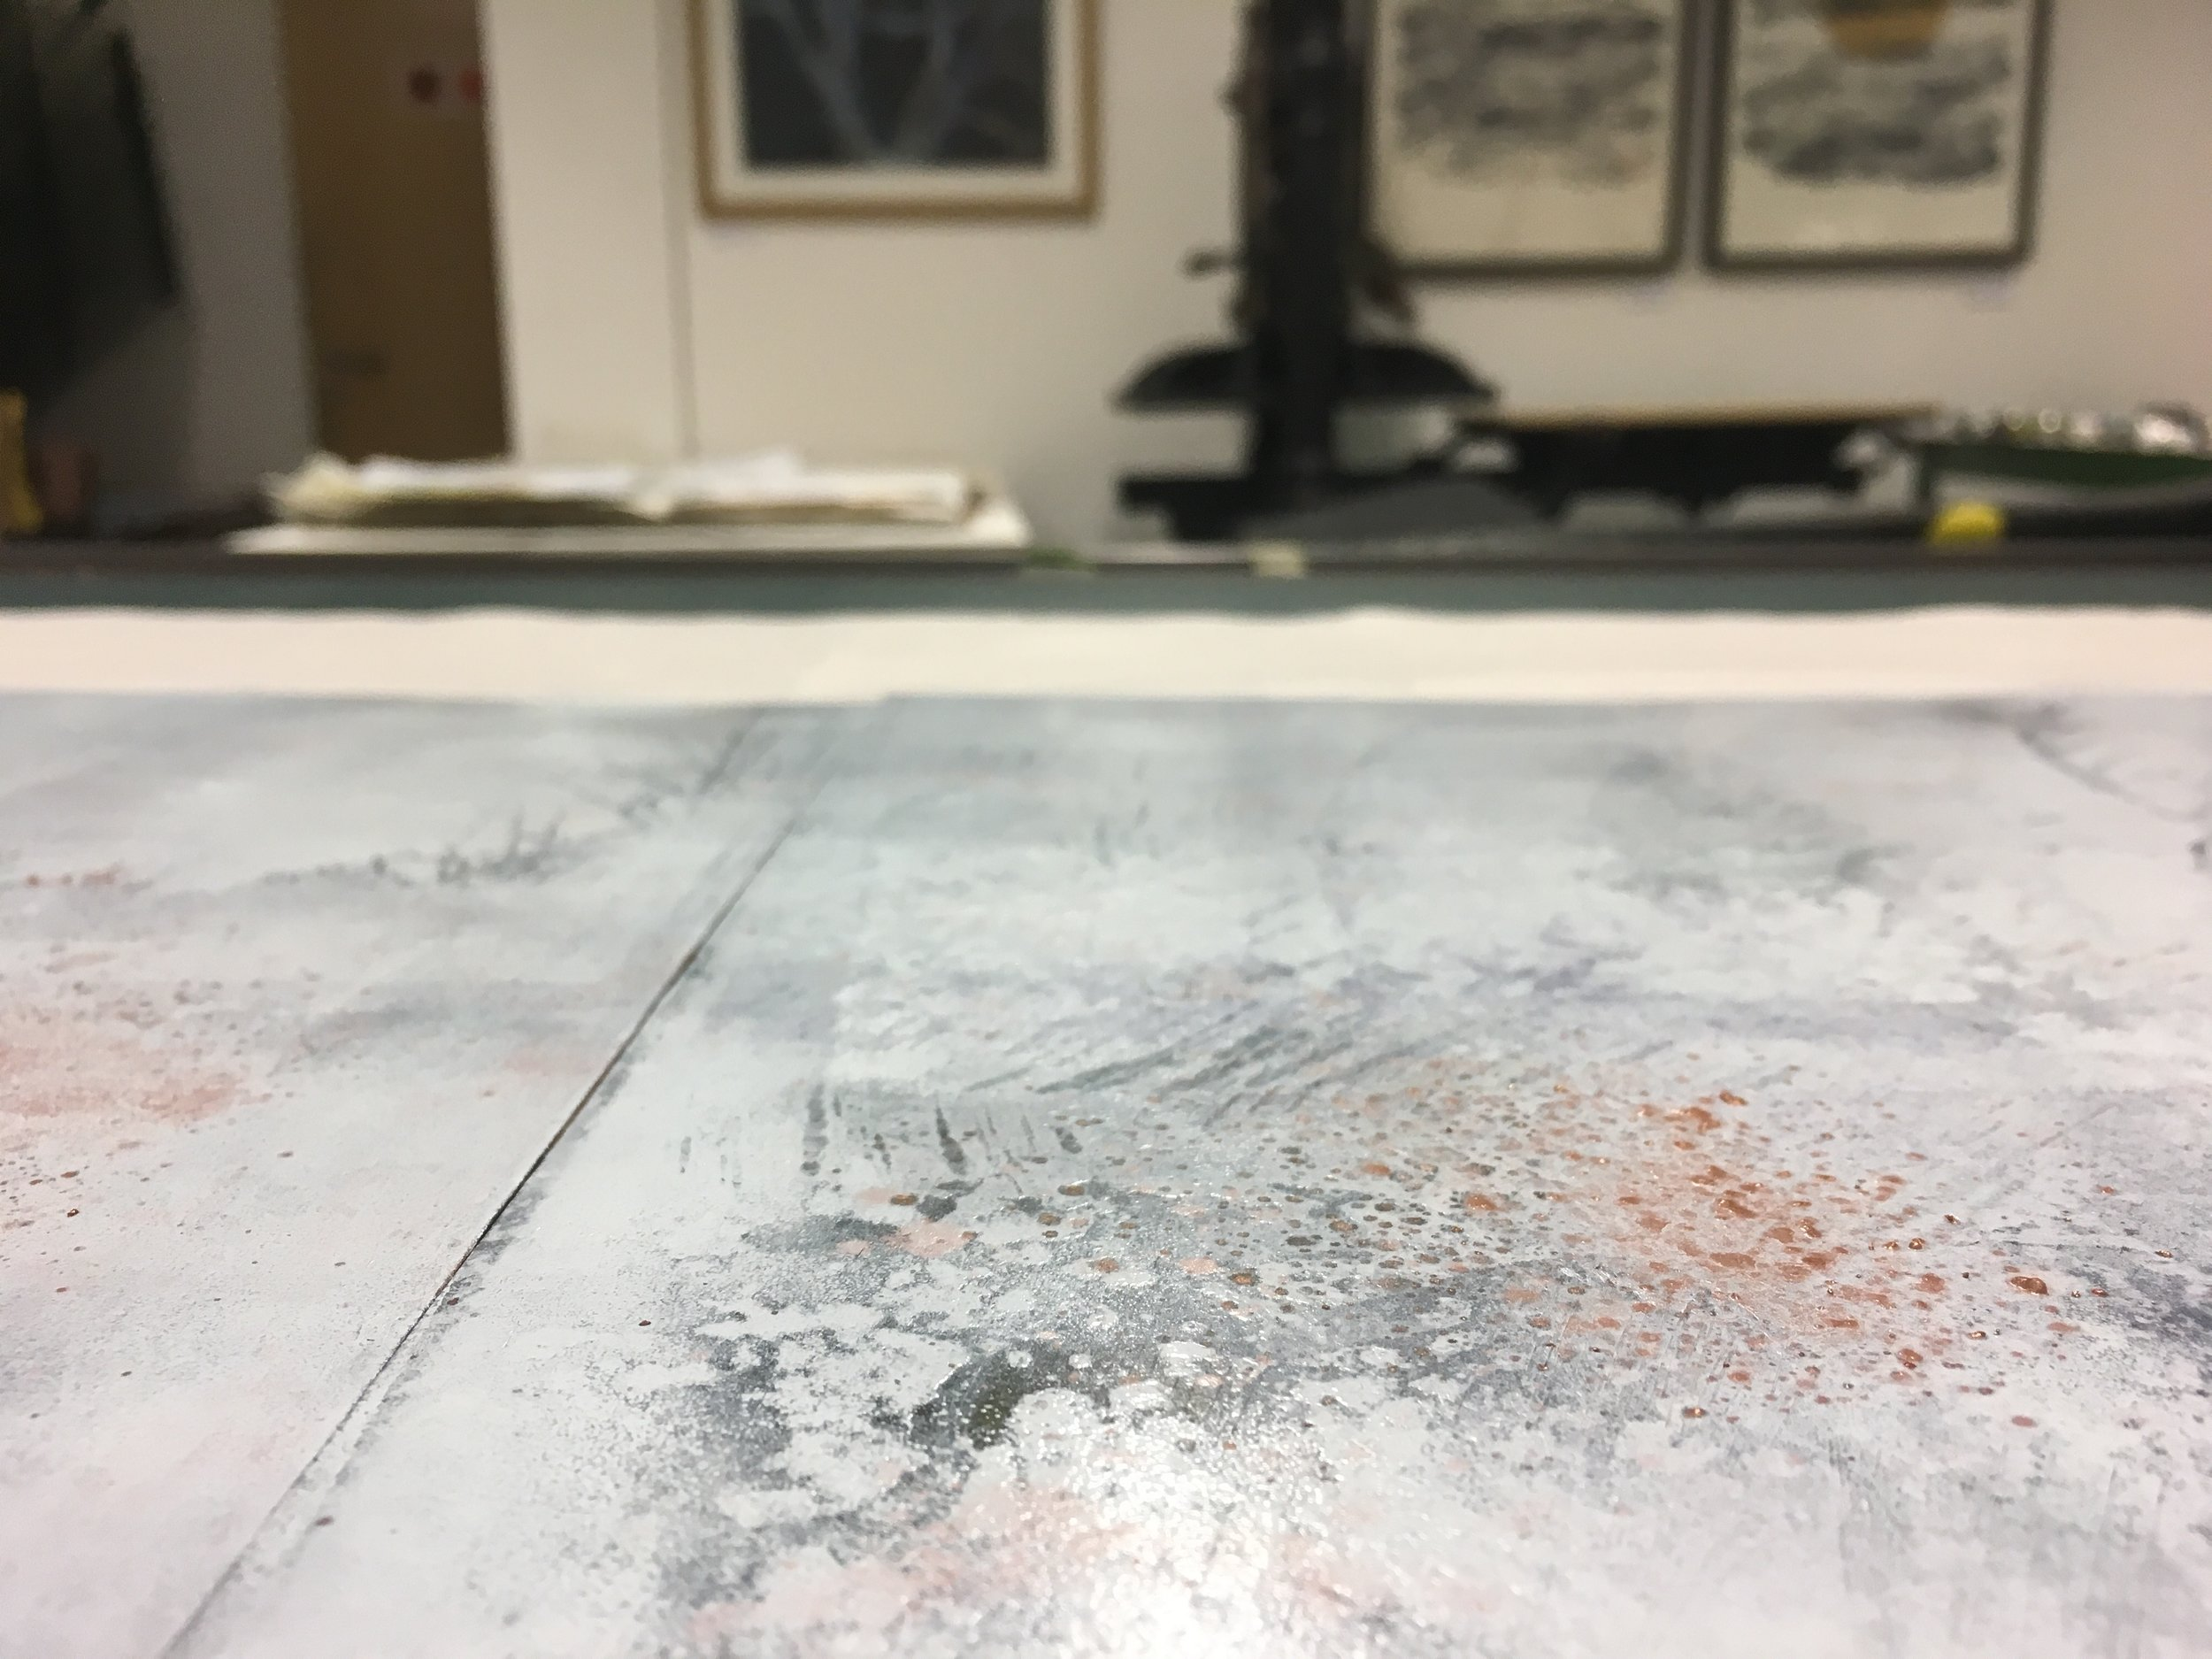 Digswell Print Studio August 2018. Working on some new plates.